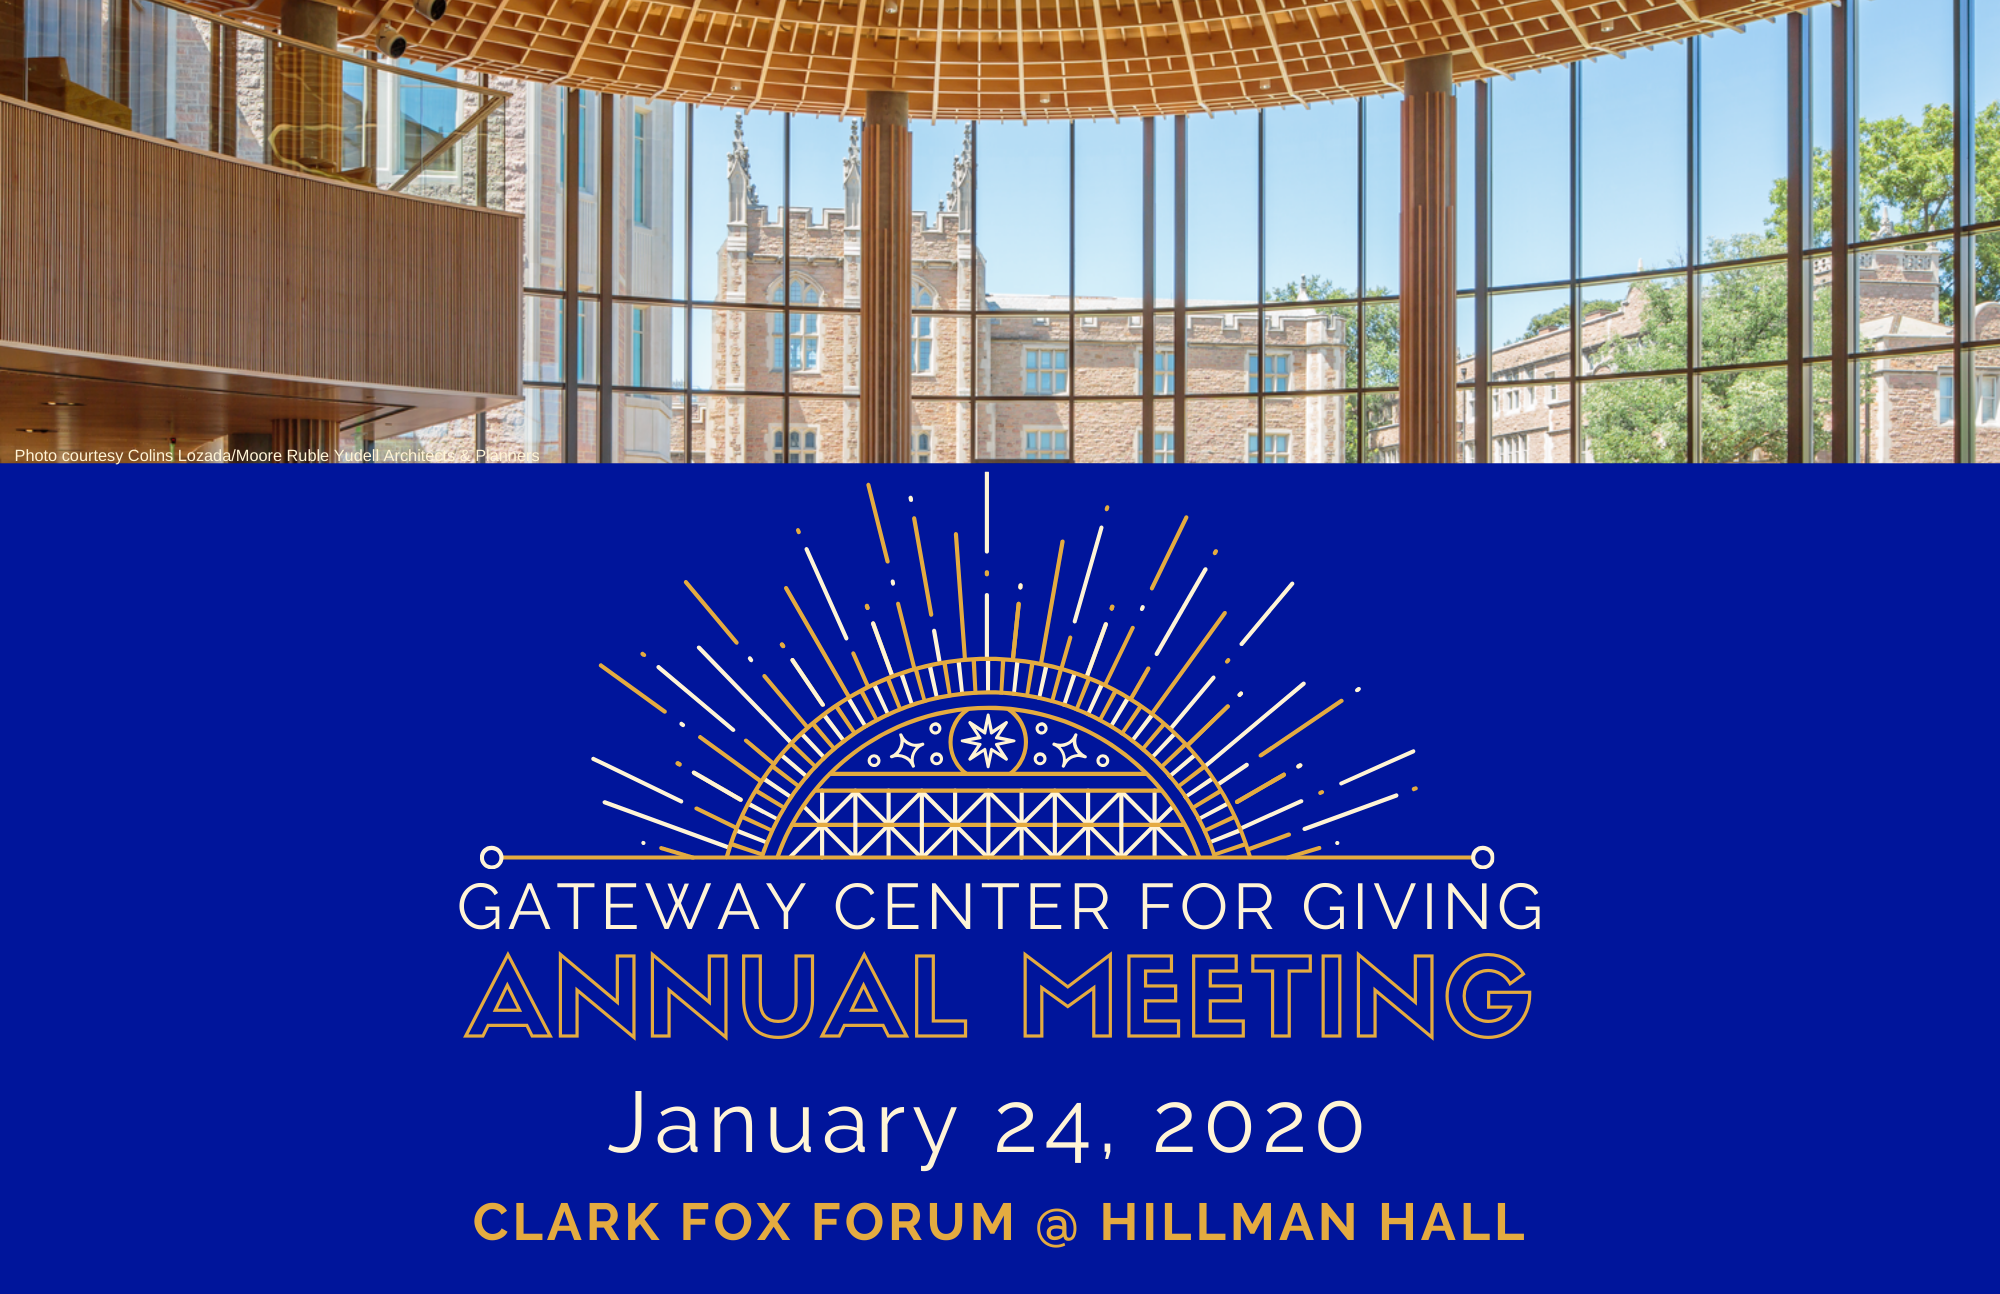 GCG Annual Meeting Invitation Cover